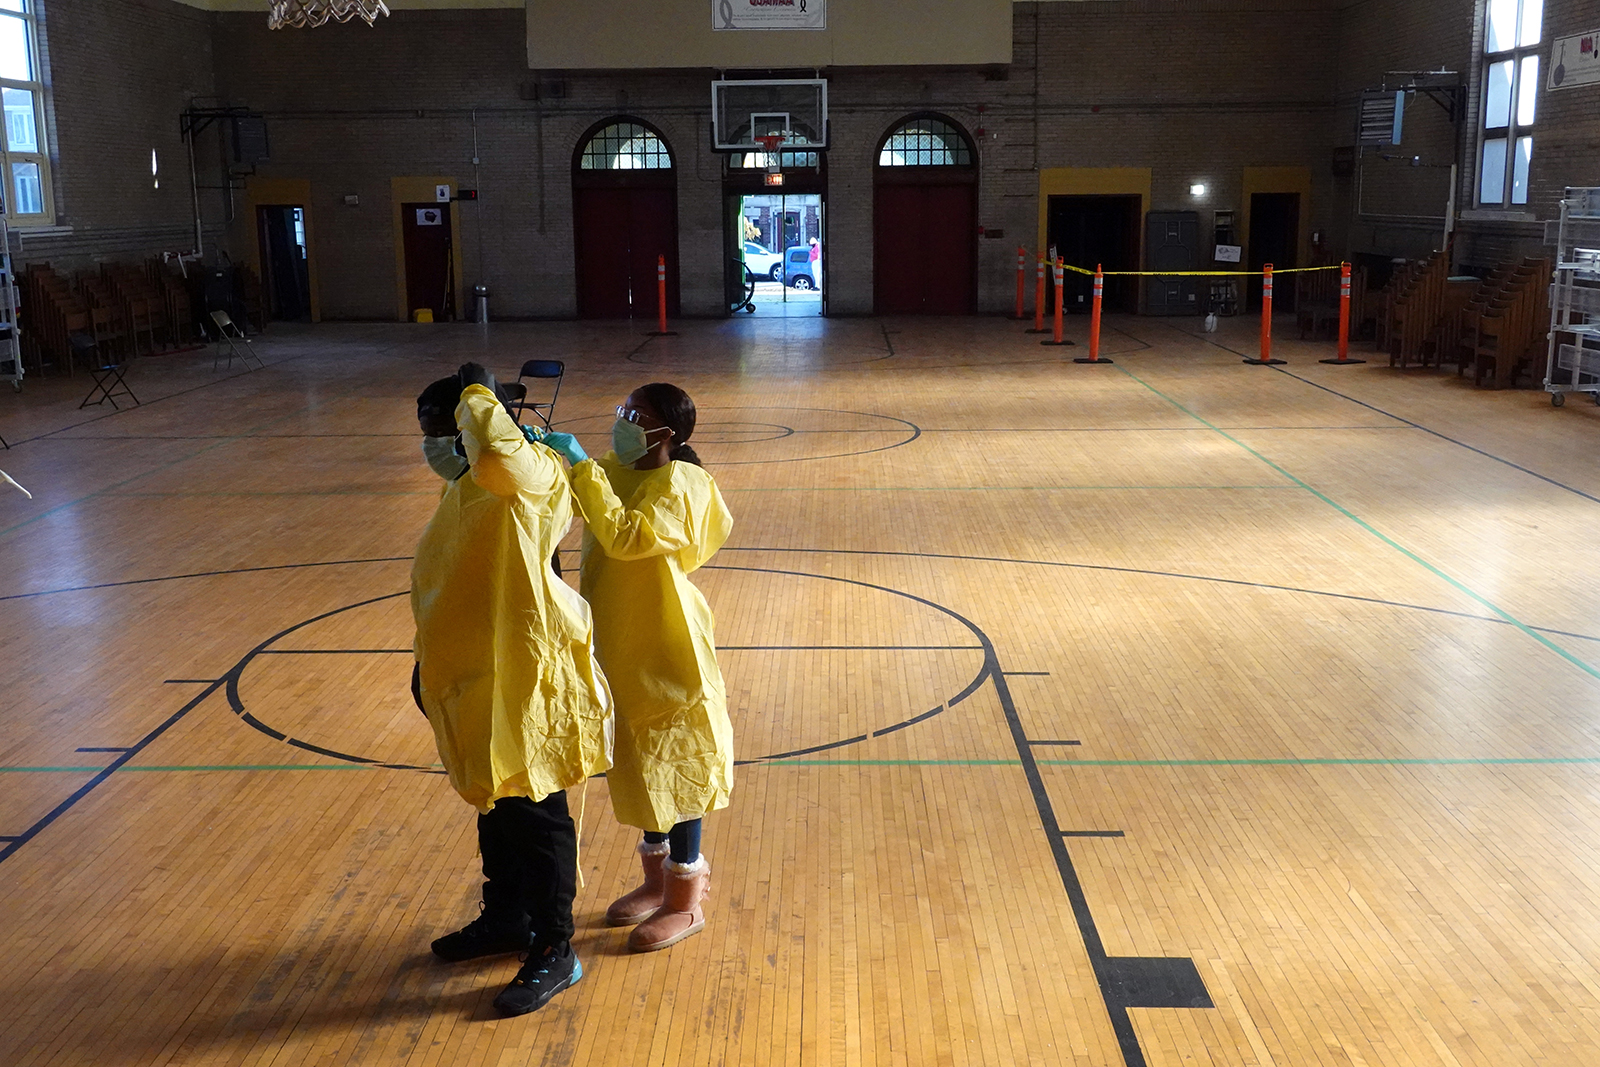 Workers suit up in personal protective equipment as they prepare to open a COVID-19 test site in the Englewood neighborhood of Chicago, on Thursday, November 12.